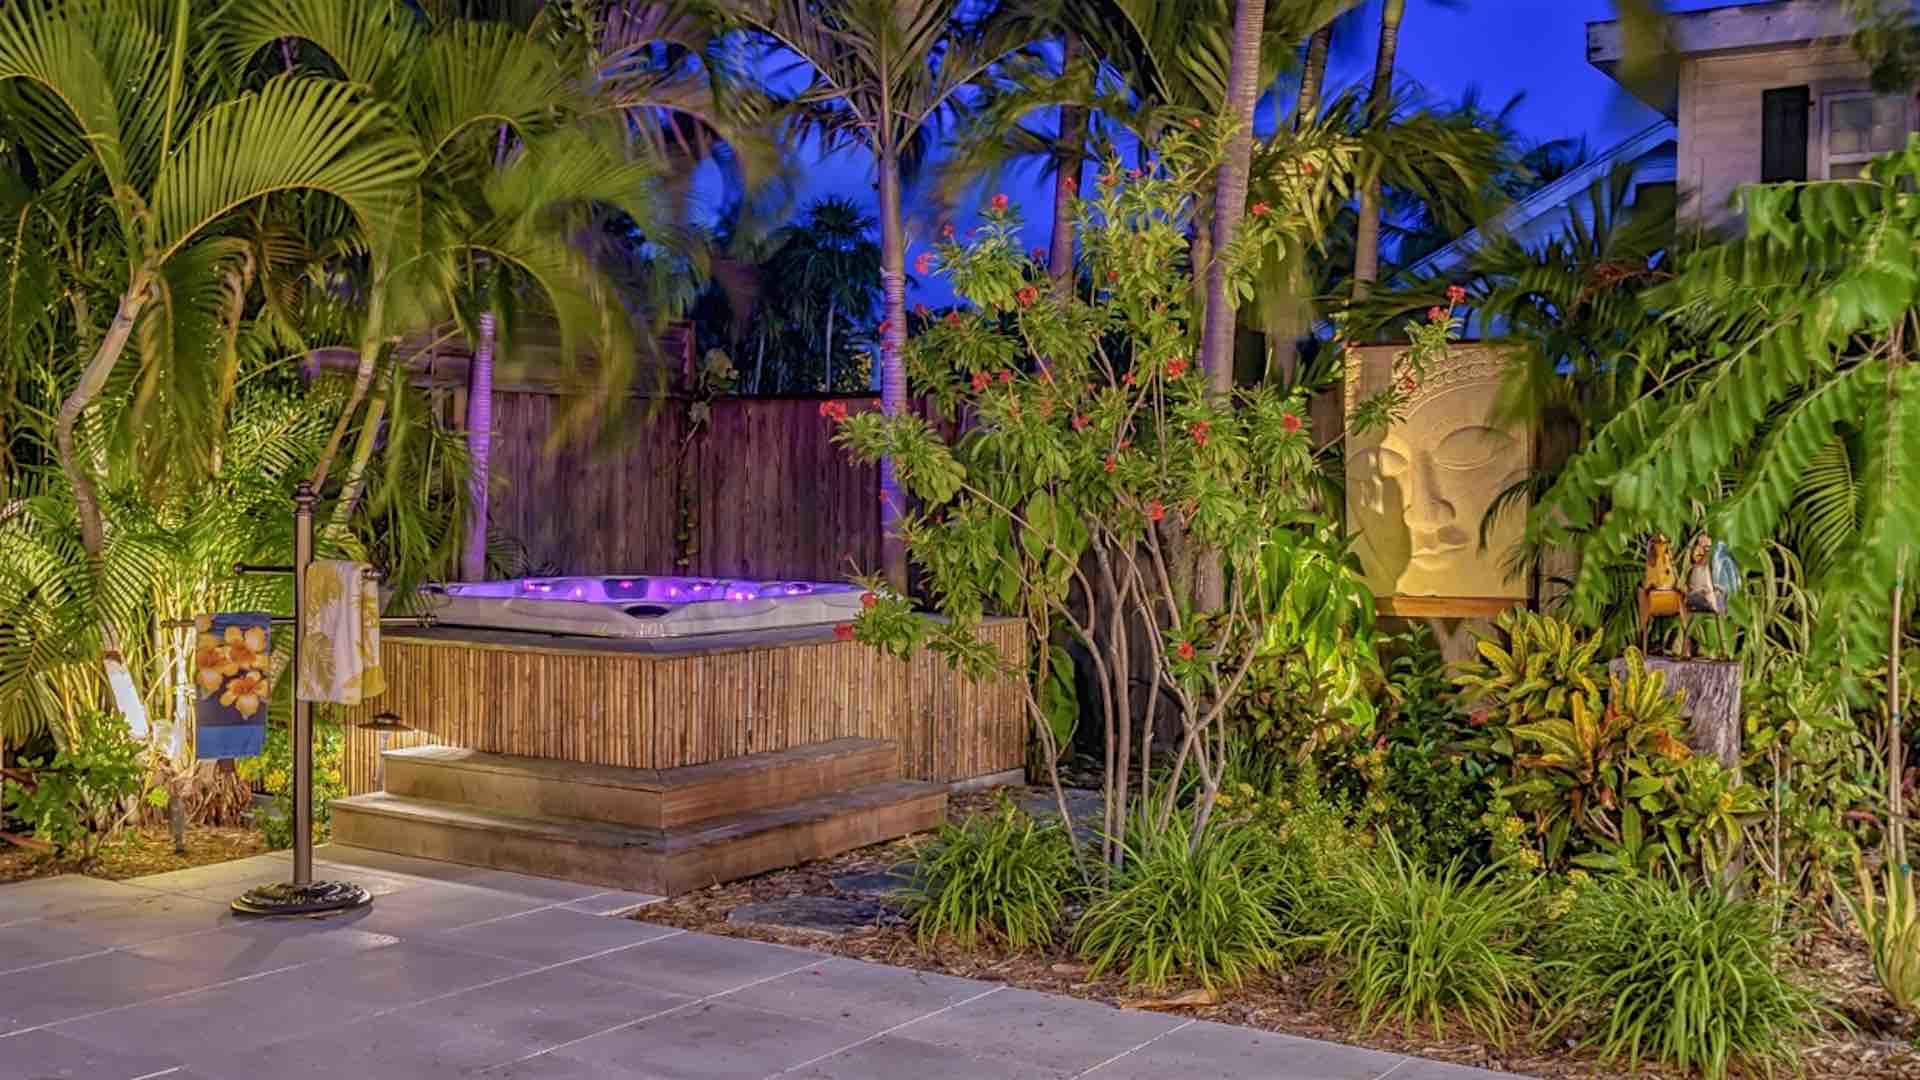 The Jacuzzi spa is great on those cooler nights or for soaking after a day of walking or biking through the island...